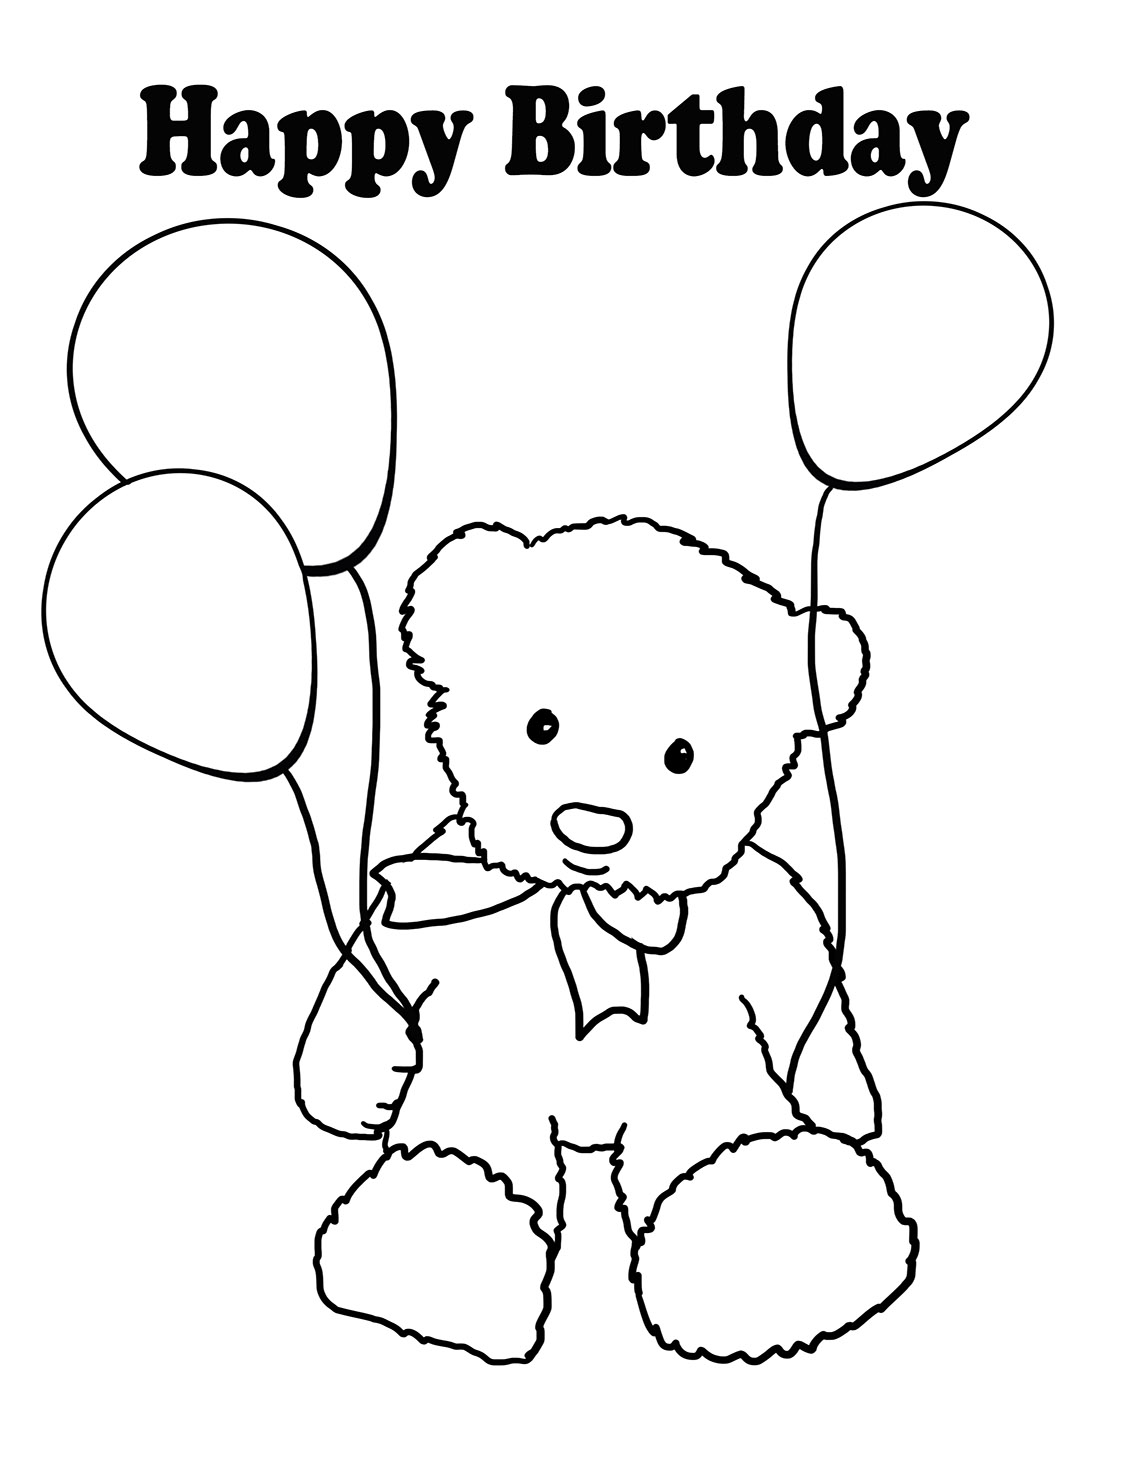 birthday balloons printable 6 best images of balloon stencils free printable free birthday balloons printable